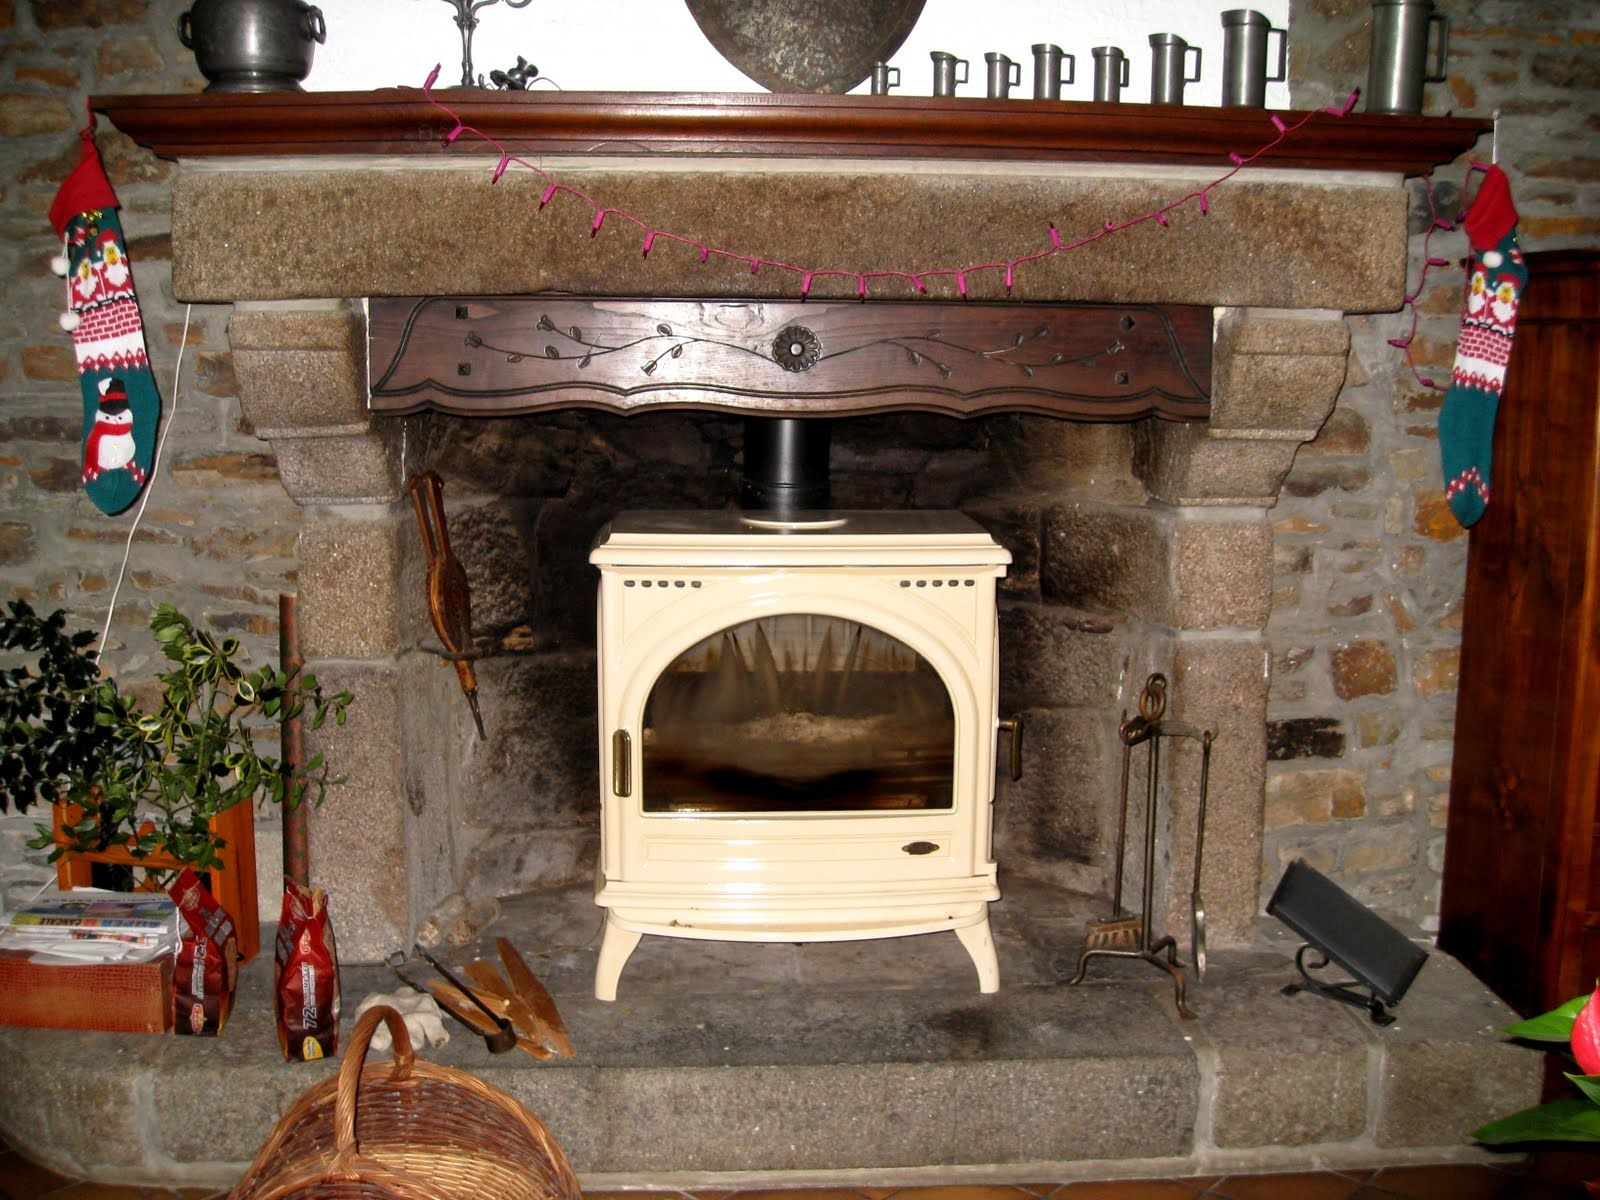 Wood Stove Inside Fireplace Home For Living Fireplace Wood Stove Home